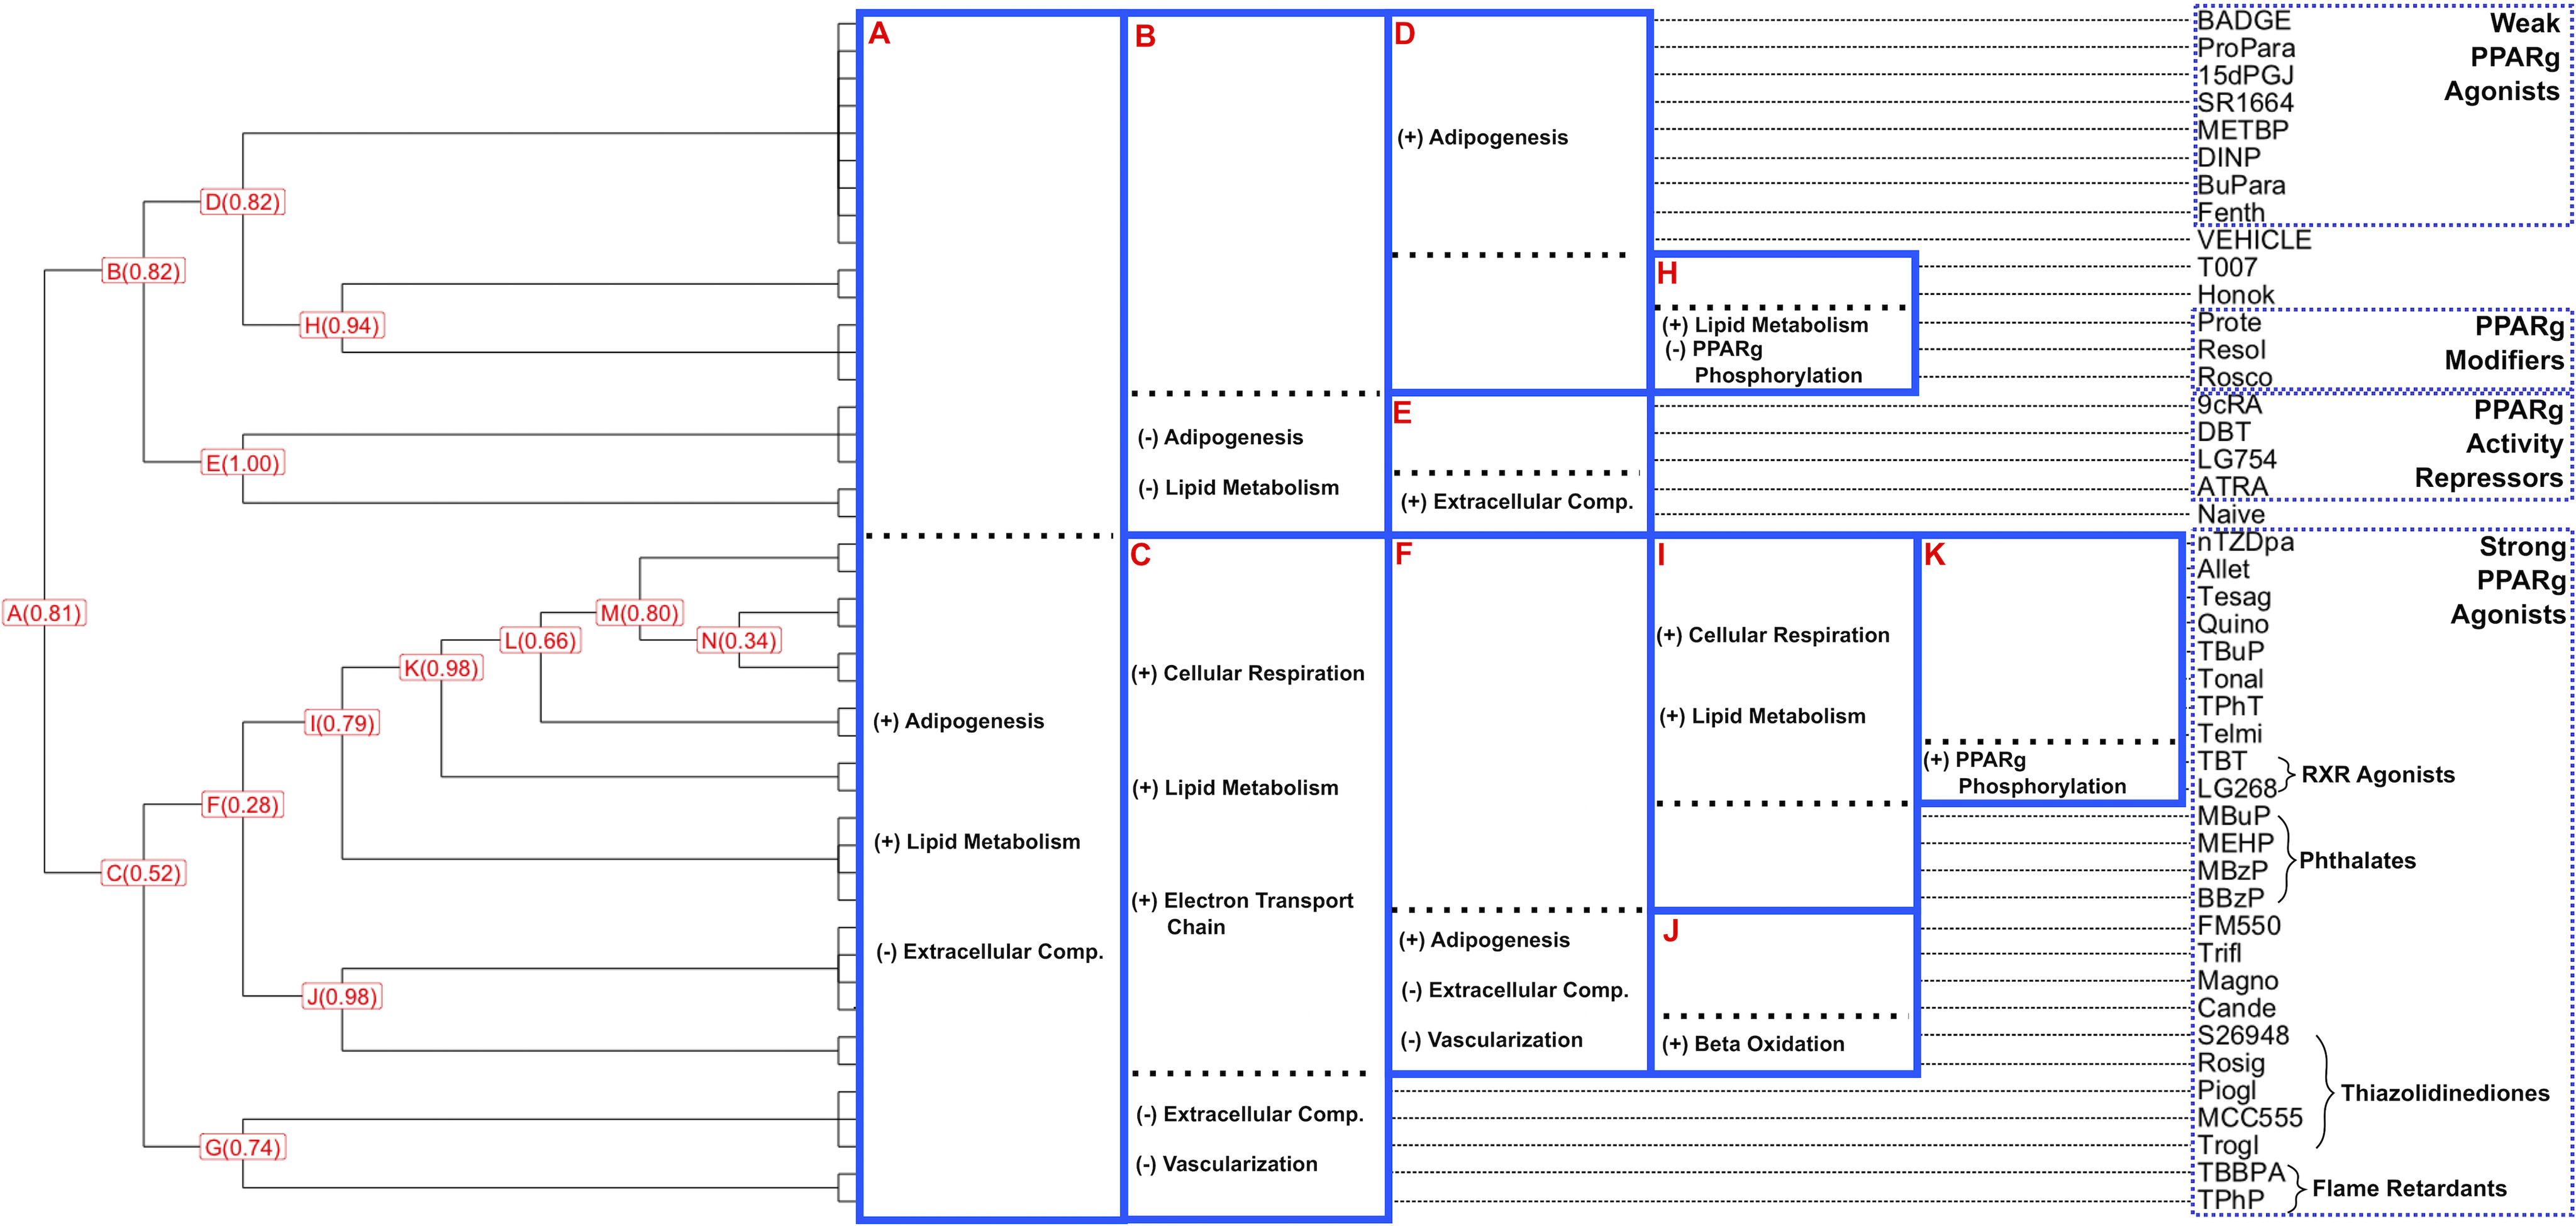 Figure 3 is a horizontal dendrogram graph, plotting Weak Peroxisome proliferator-activated receptor lowercase gamma agonists, including B A D G E, ProPara, 15dP G J, S R 1664, M E T B P, D I N P, BluPara, Fenth; Vehicle, T 007, Honok; Peroxisome proliferator-activated receptor lowercase gamma Modifiers, including Prote, Resol, Rosco; Peroxisome proliferator-activated receptor lowercase gamma activity repressors, including 9c R A, D B T, L G 754, A T R A; Naïve; Strong Peroxisome proliferator-activated receptor lowercase gamma Agonists, including n T Z D pa, Allet, Tessag, Quino, T B u P, Tonal, TPhT; R X R agonists, including T B T and L G 268; Phithalates, including M Bup, M E H P, B B z p P; F M , Trifl, Magno, Cande, Thiazolidinediones, including S 26948, Rosig, M C C 555, Trogl, and Flame Retardants, including T B B P A and T P h P (y-axis) across the proportion of gene-level bootstraps (x-axis) for uppercase a, including Adipogenesis, Lipid Metabolism, and Extracellular Comp.; uppercase b, including Adipogenesis and Lipid Metabolism; uppercase c, including cellular respiration, lipid metabolism, electron transport chain, extracellular comp., and vascularization; uppercase d, including Adipogenesis; uppercase e, including extracellular comp.; uppercase f, including Adipogenesis, extracellular comp., and vascularization; uppercase h, including lipid metabolism and Peroxisome proliferator-activated receptor lowercase gamma Phosphorylation; uppercase i, including cellular respiration and lipid metabolism; uppercase j, including beta oxidation; and uppercase k, including Peroxisome proliferator-activated receptor lowercase gamma Phosphorylation.